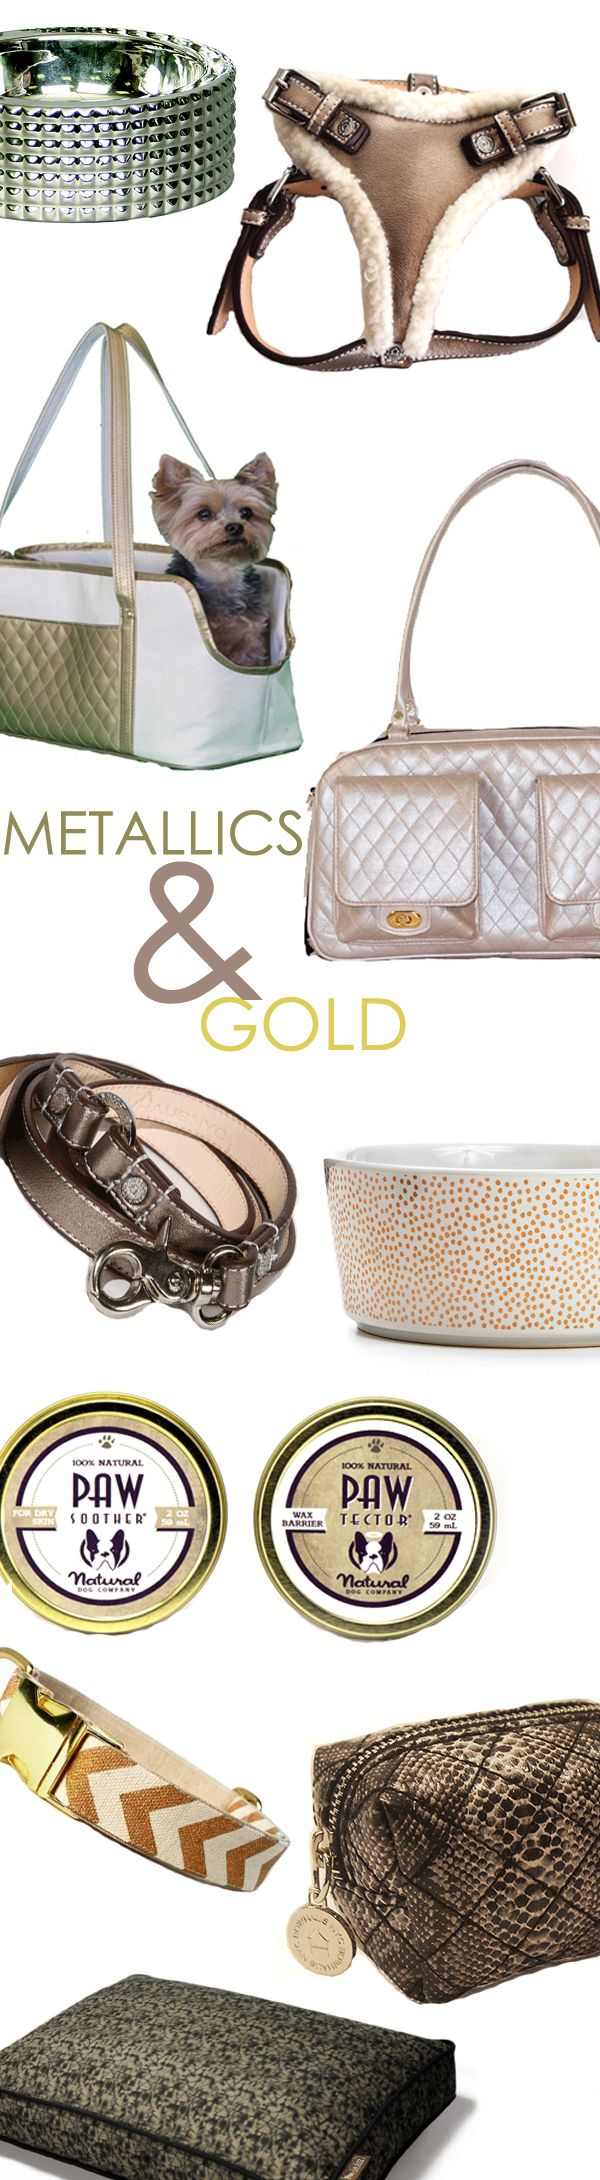 Metallics and gold are a huge trend this season! Give your 4-legged friends the gift of fashion this holiday with fashionable dog accessories from Felix Chien. From designer dog carriers to luxury dog collars and leashes, find all the sparkling styles you're wishing for.